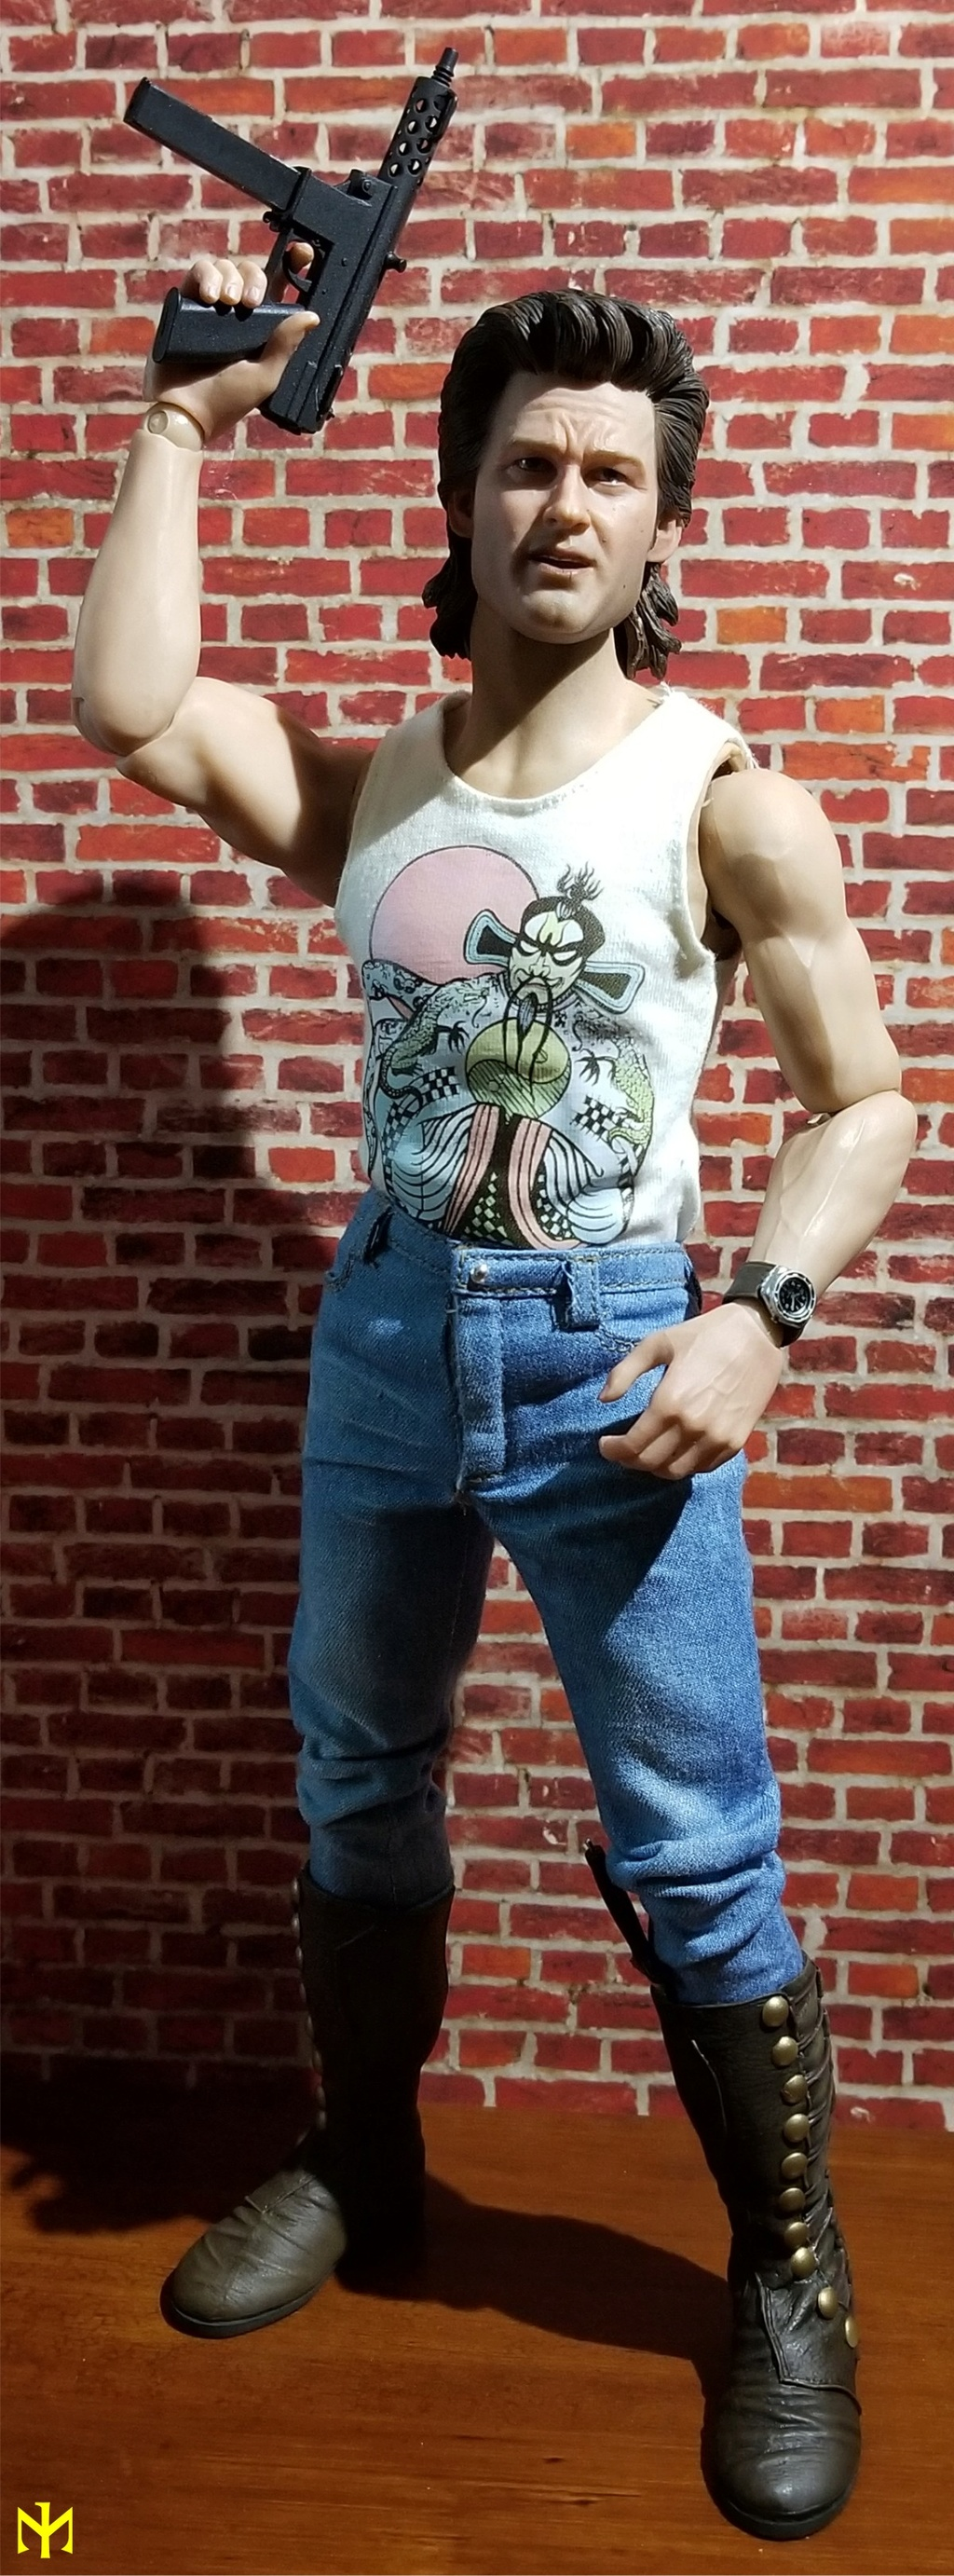 productreview - Sideshow Jack Burton Detailed Review Sscjb112